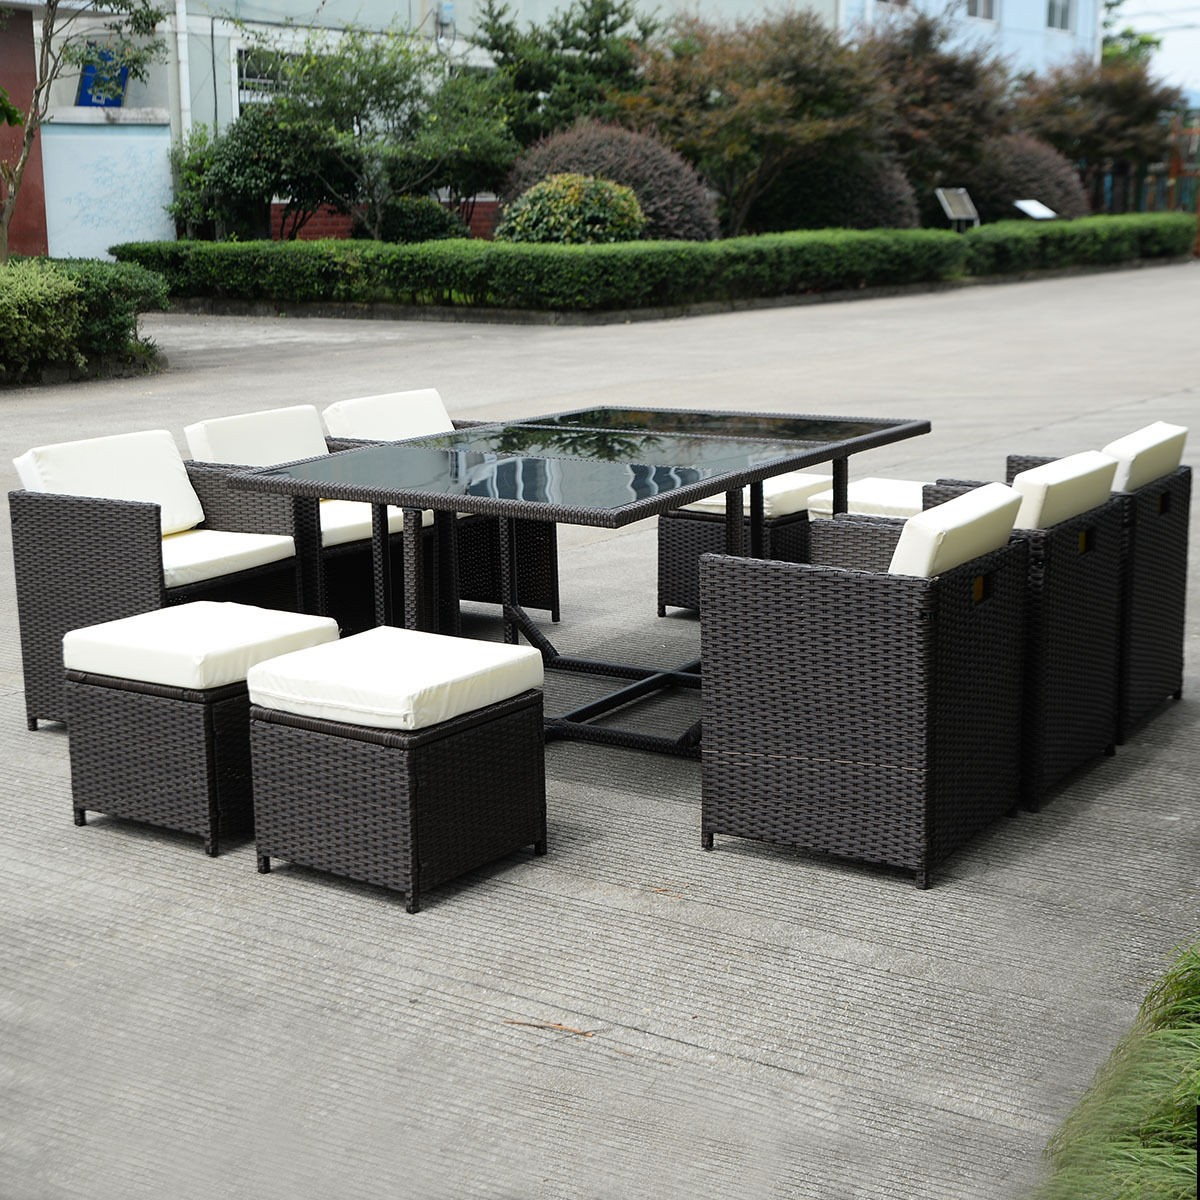 11 Pcs Outdoor Patio Dining Set Metal Rattan Wicker Garden Furniture Cushioned Ebay